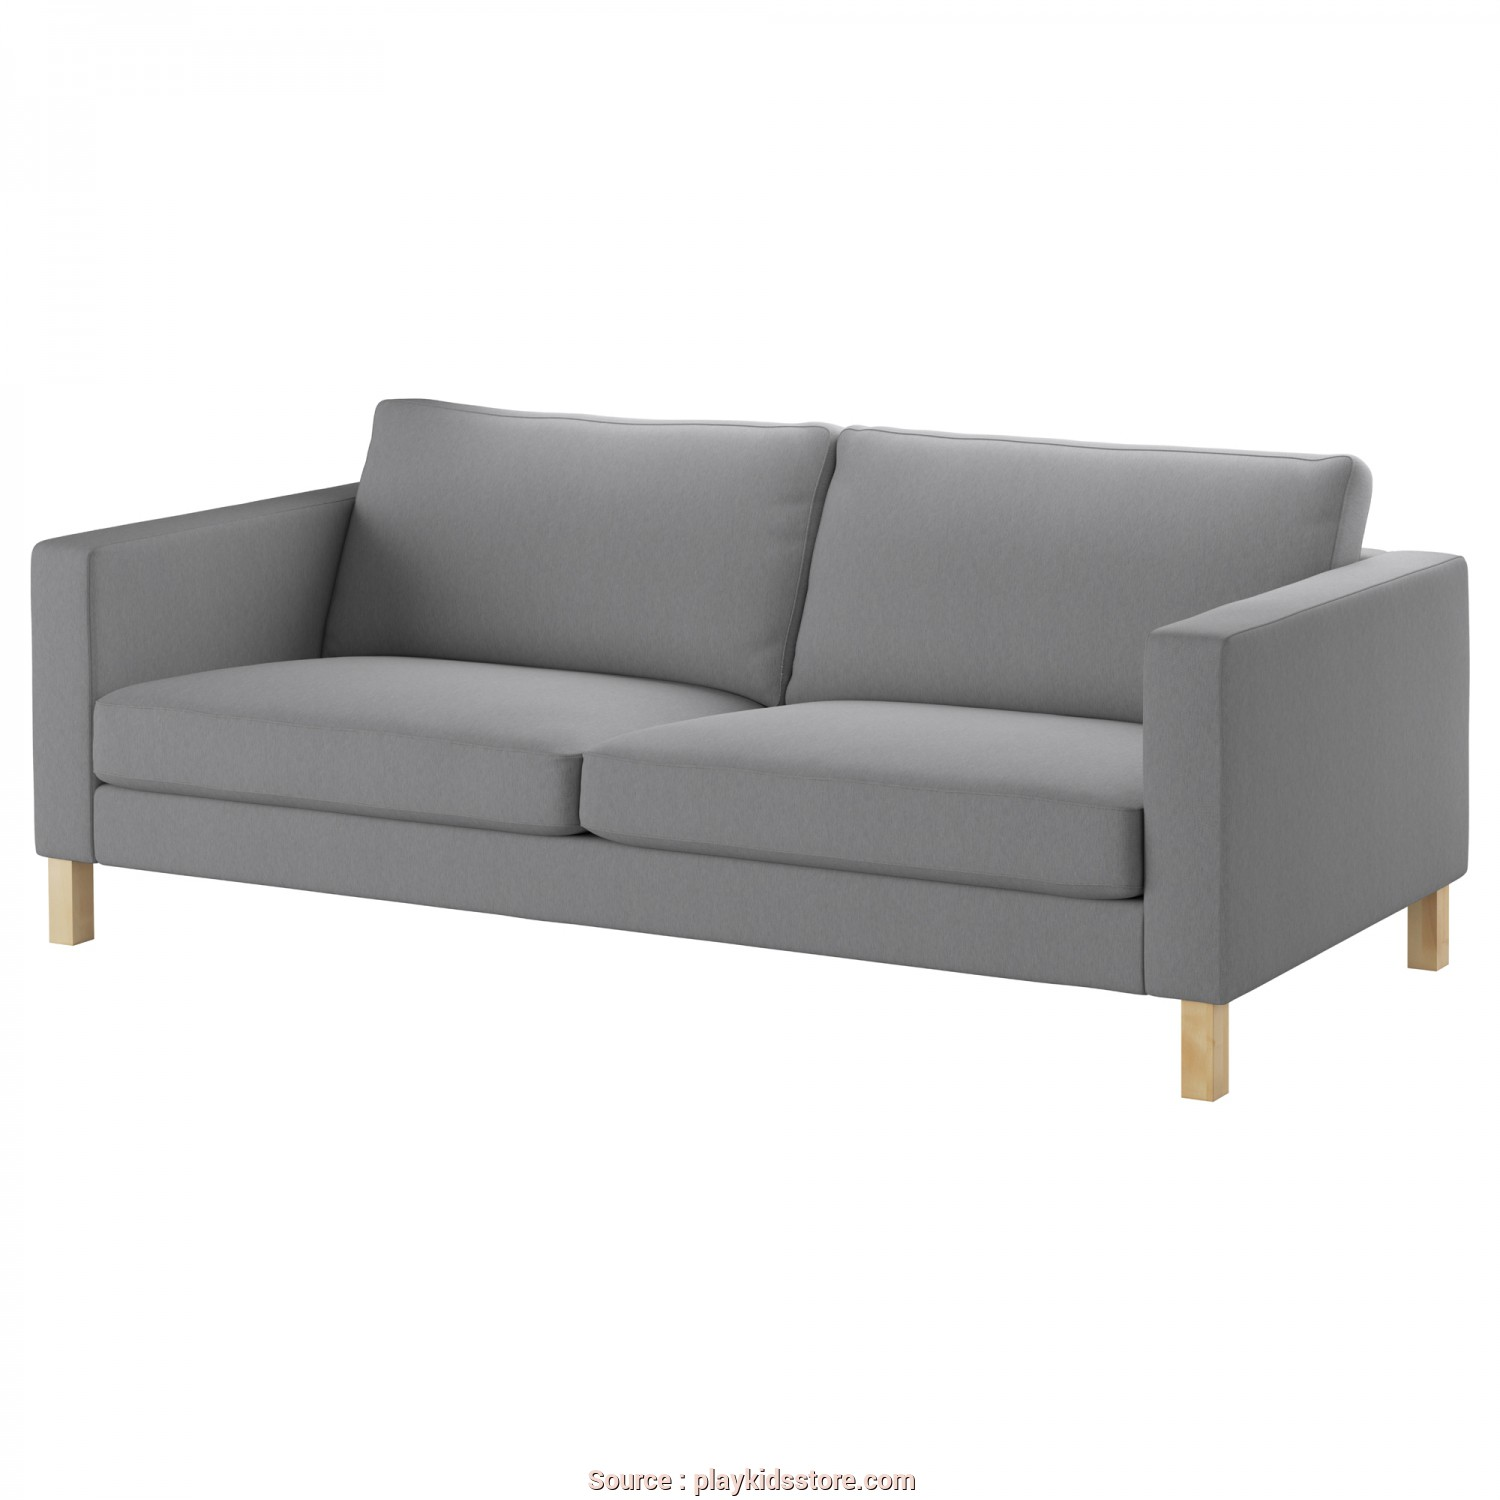 Ikea Klippan 3 Places, Completare Recliner Chair Covers, Couch Covers, Sectionals, Ikea Couch Covers